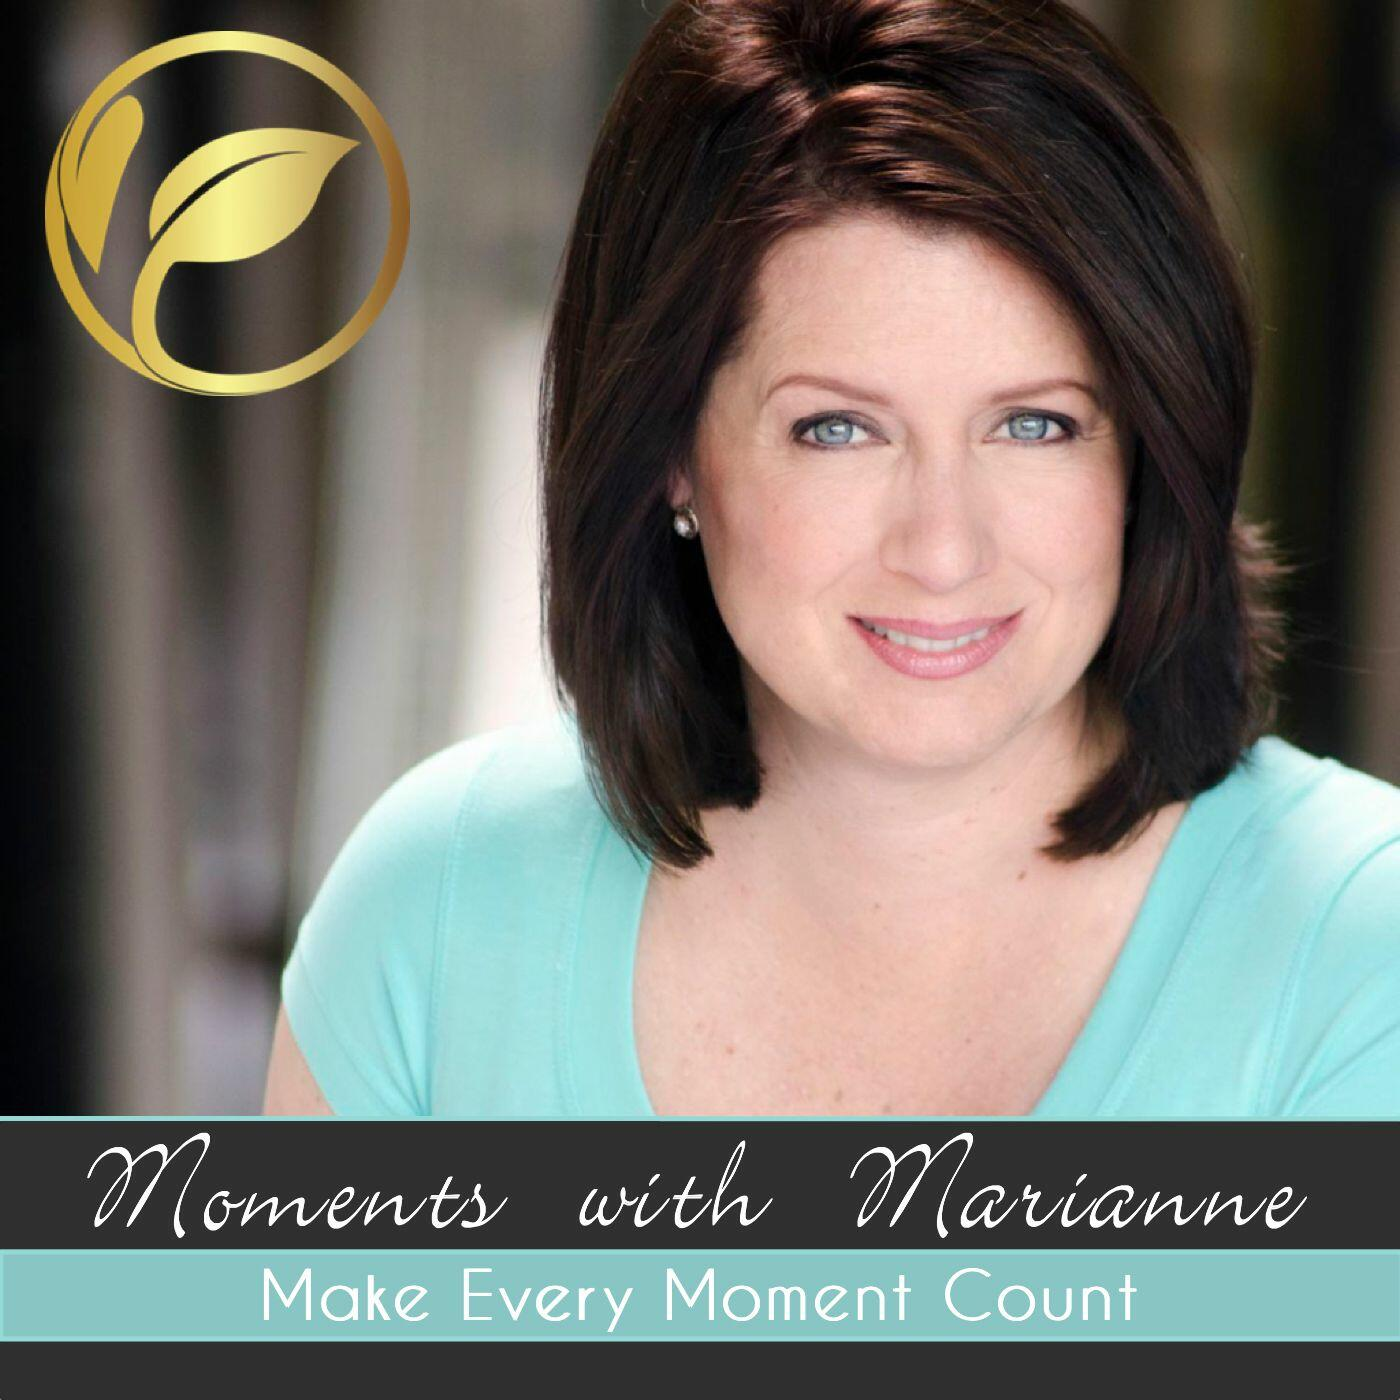 Listen to the Moments with Marianne Episode - The Second Wave with Kerri Hummingbird on iHeartRadio | iHeartRadio